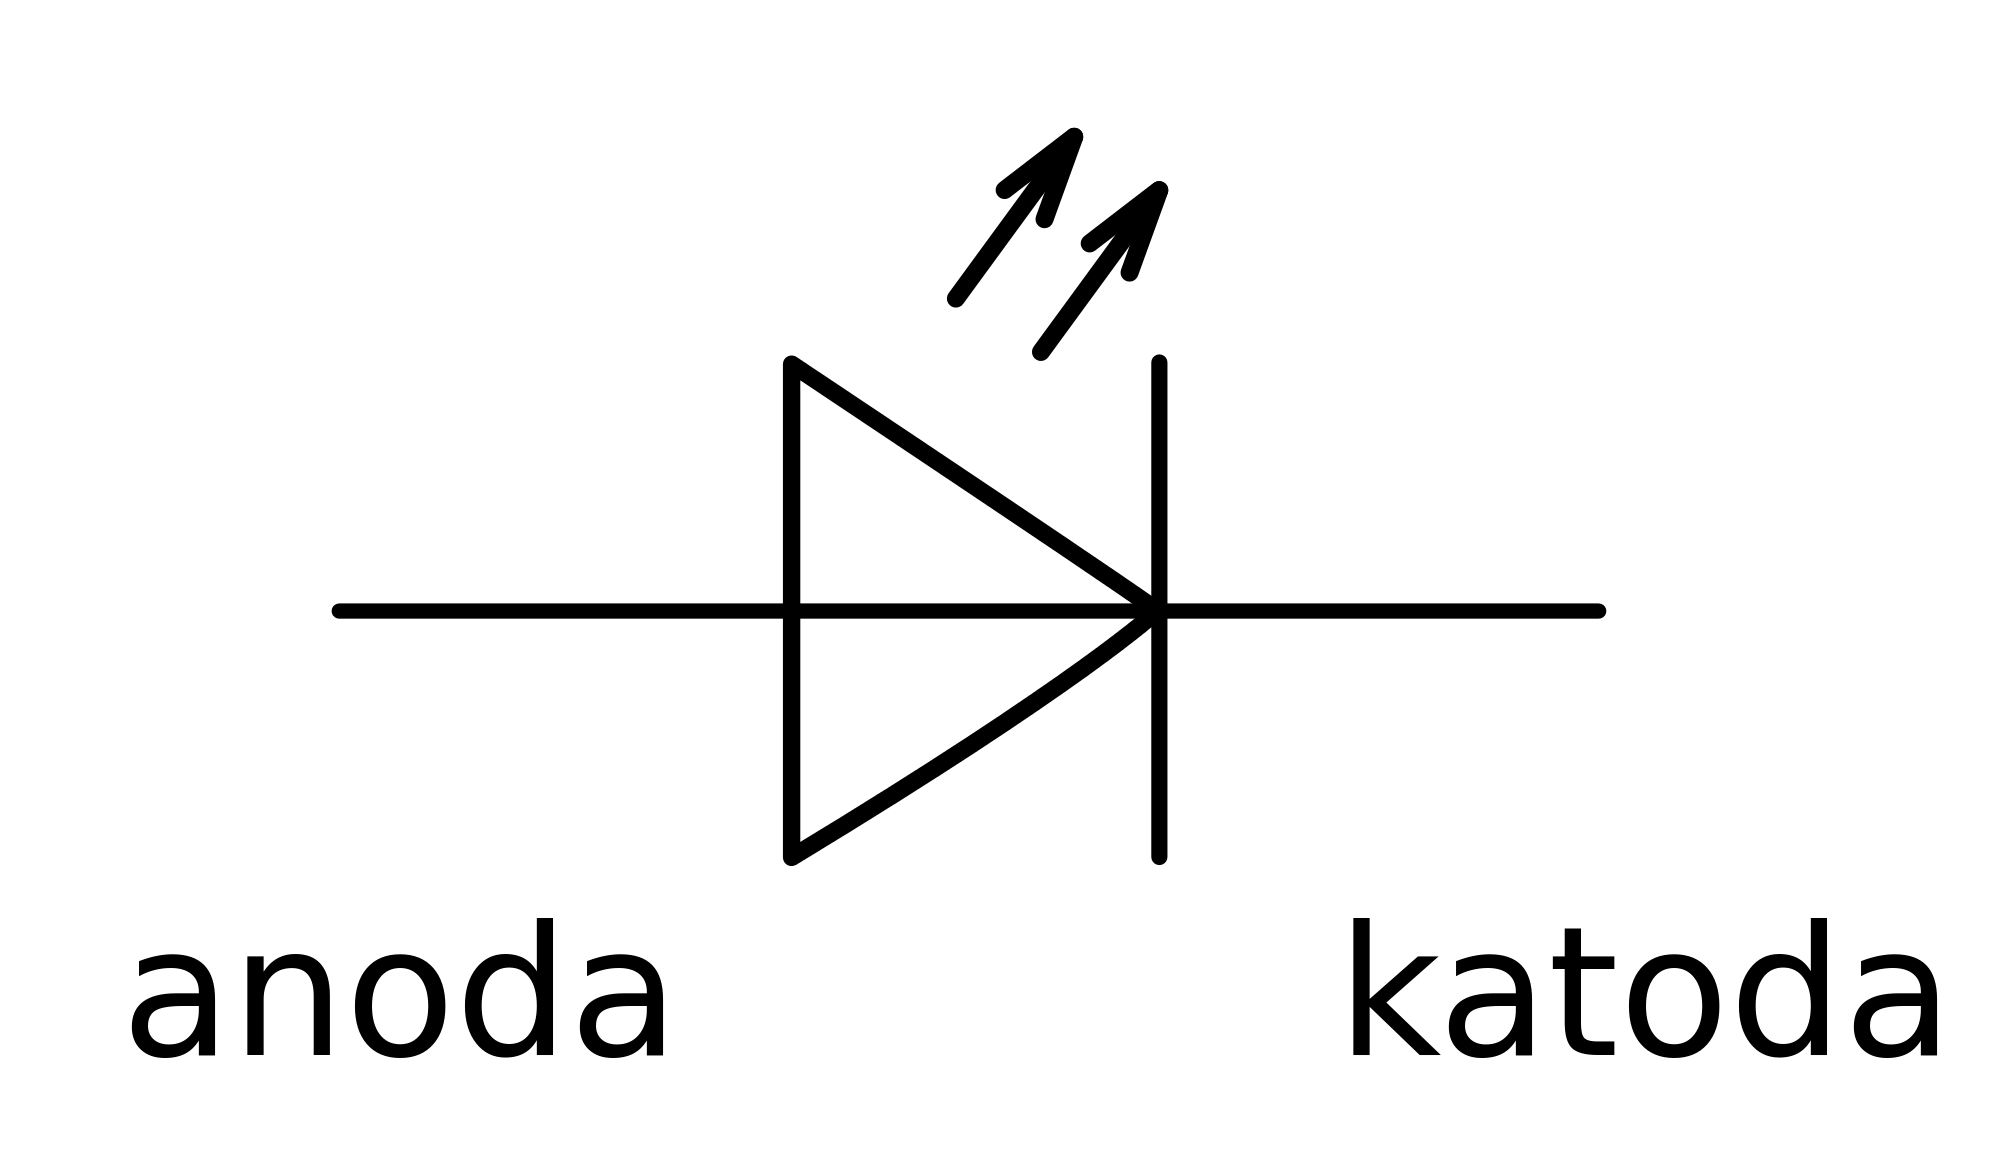 Led Diode Schematic Symbol